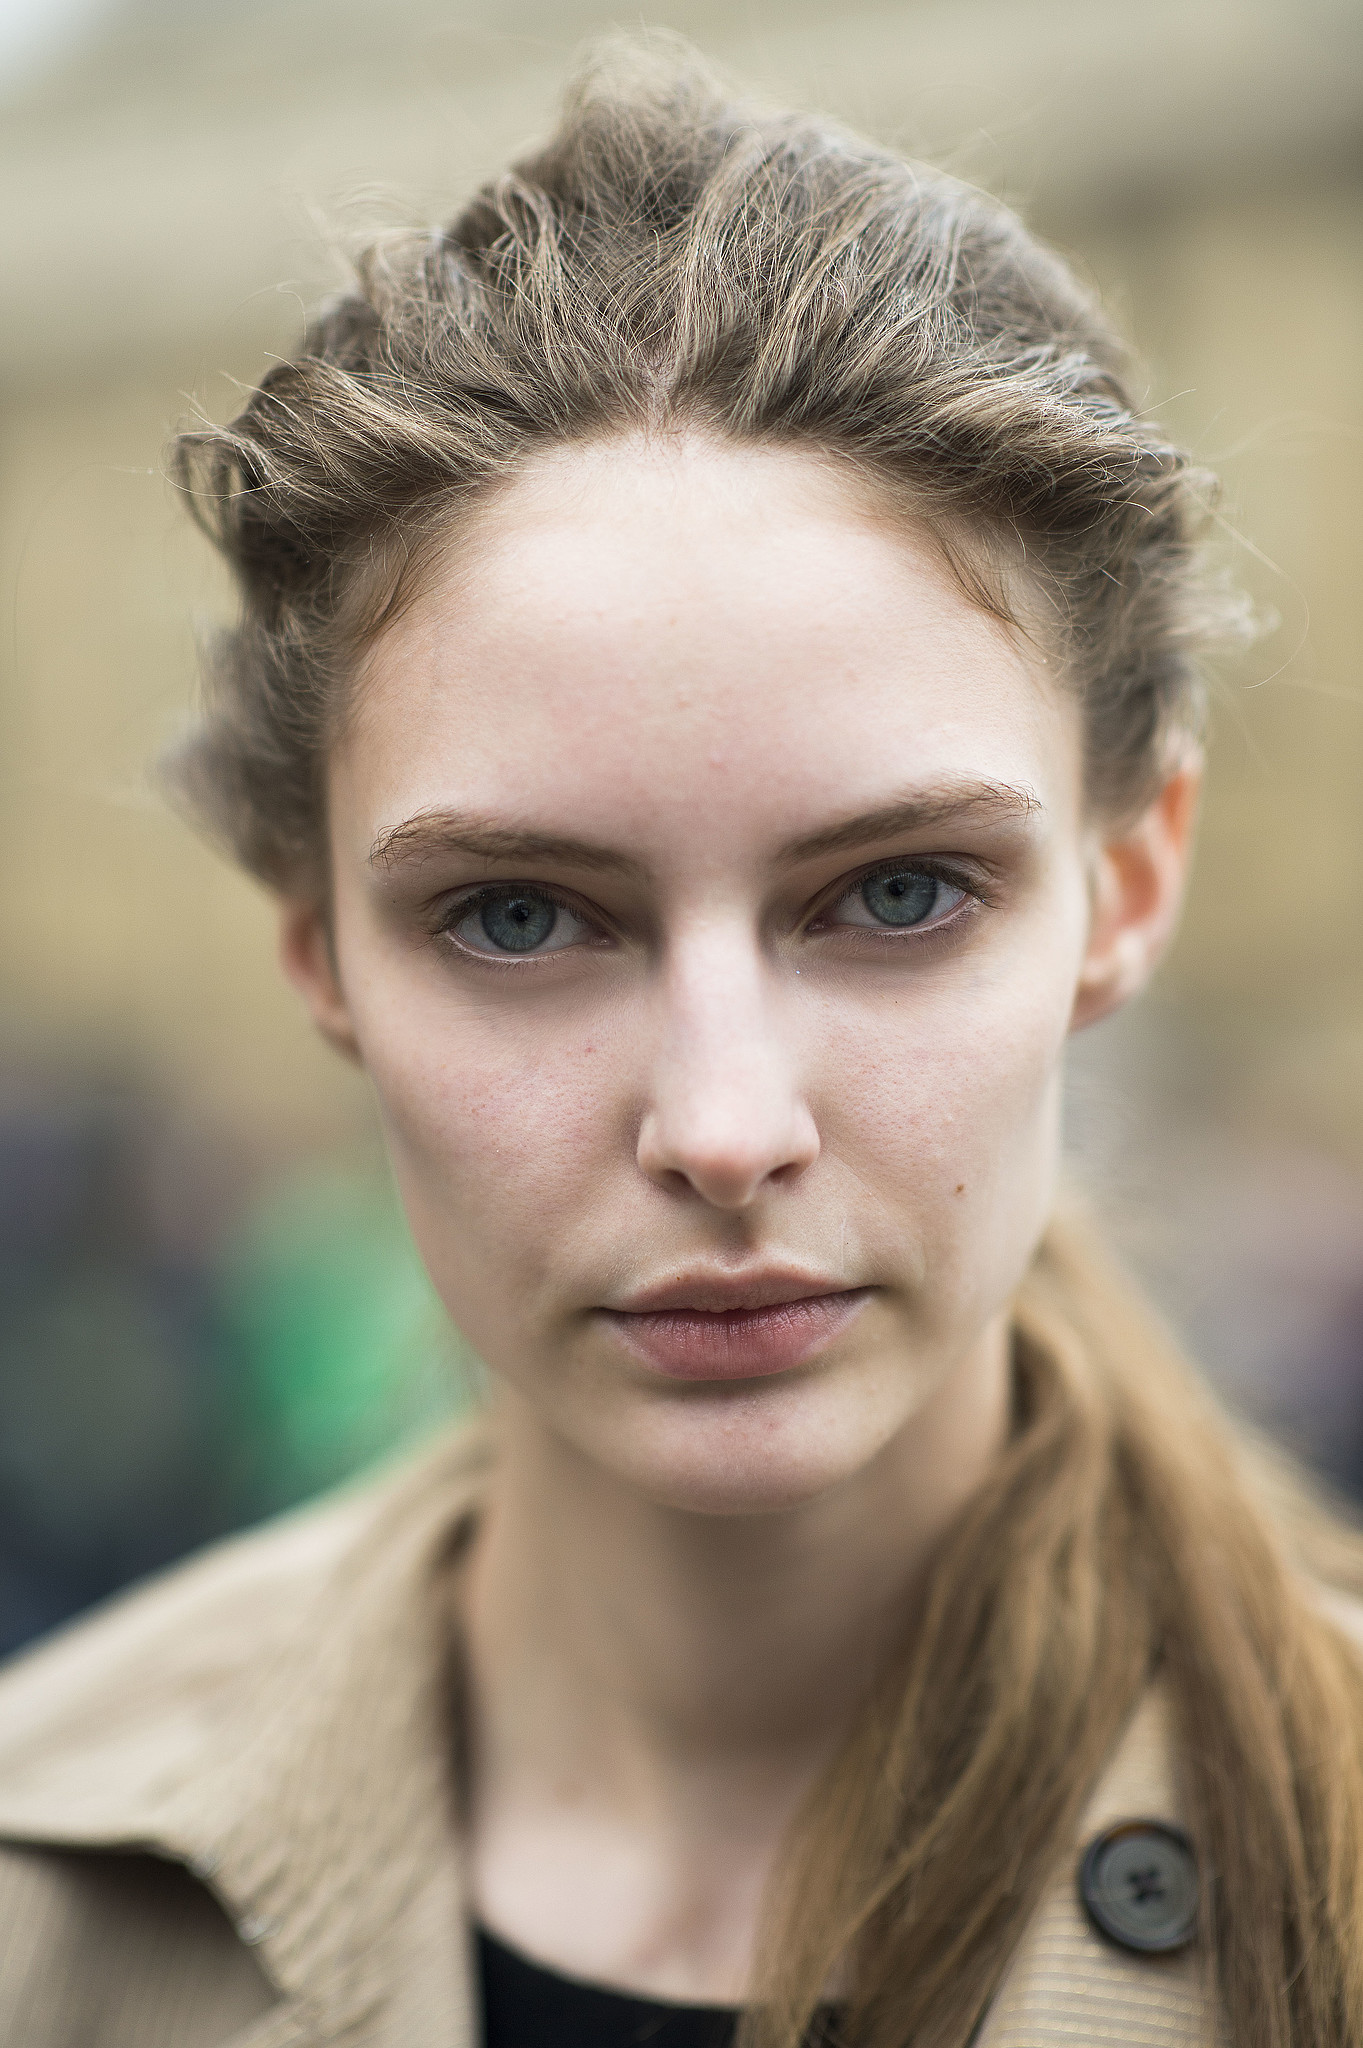 Matted hair has made its way to the ponytail. Source: Le 21ème | Adam Katz Sinding